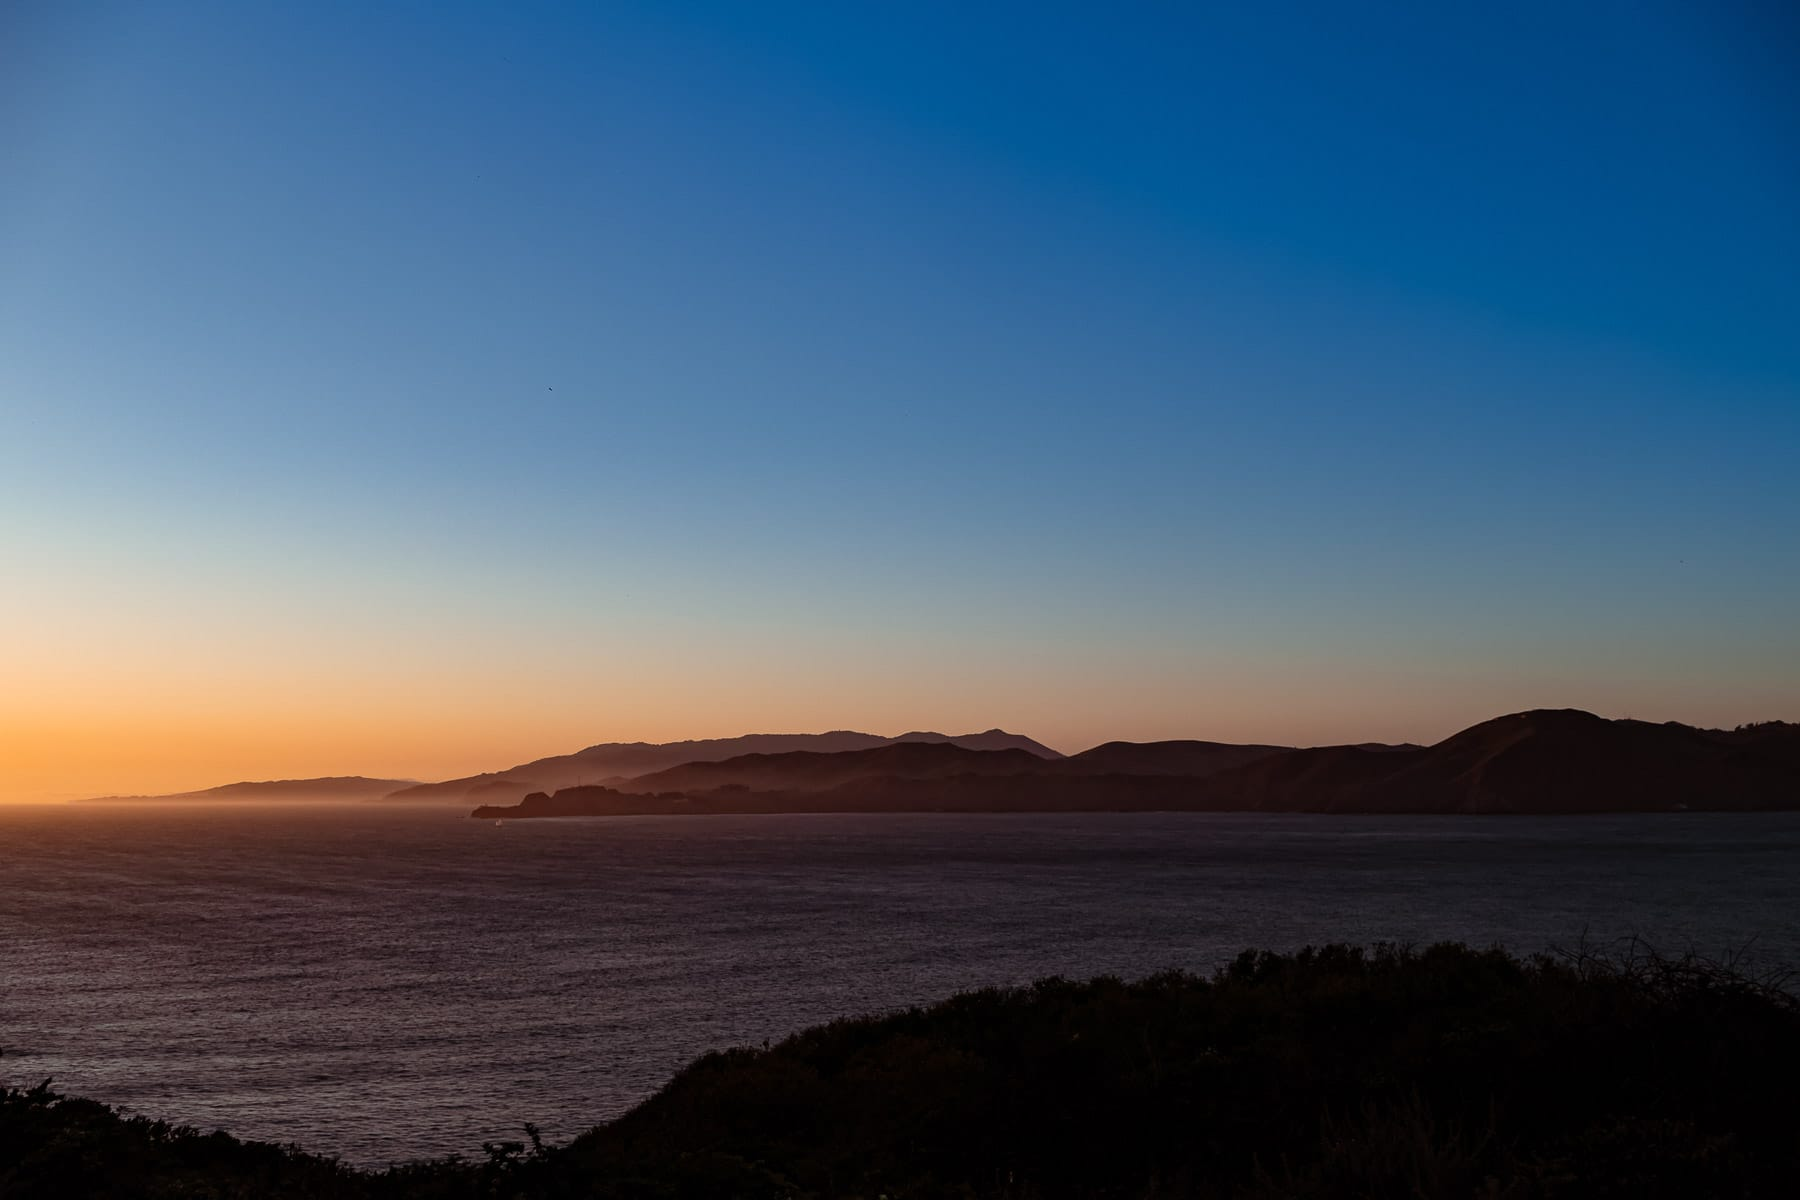 The sun sets on the Pacific Ocean and Point Bonita, California, as seen from the Lands End, San Francisco.